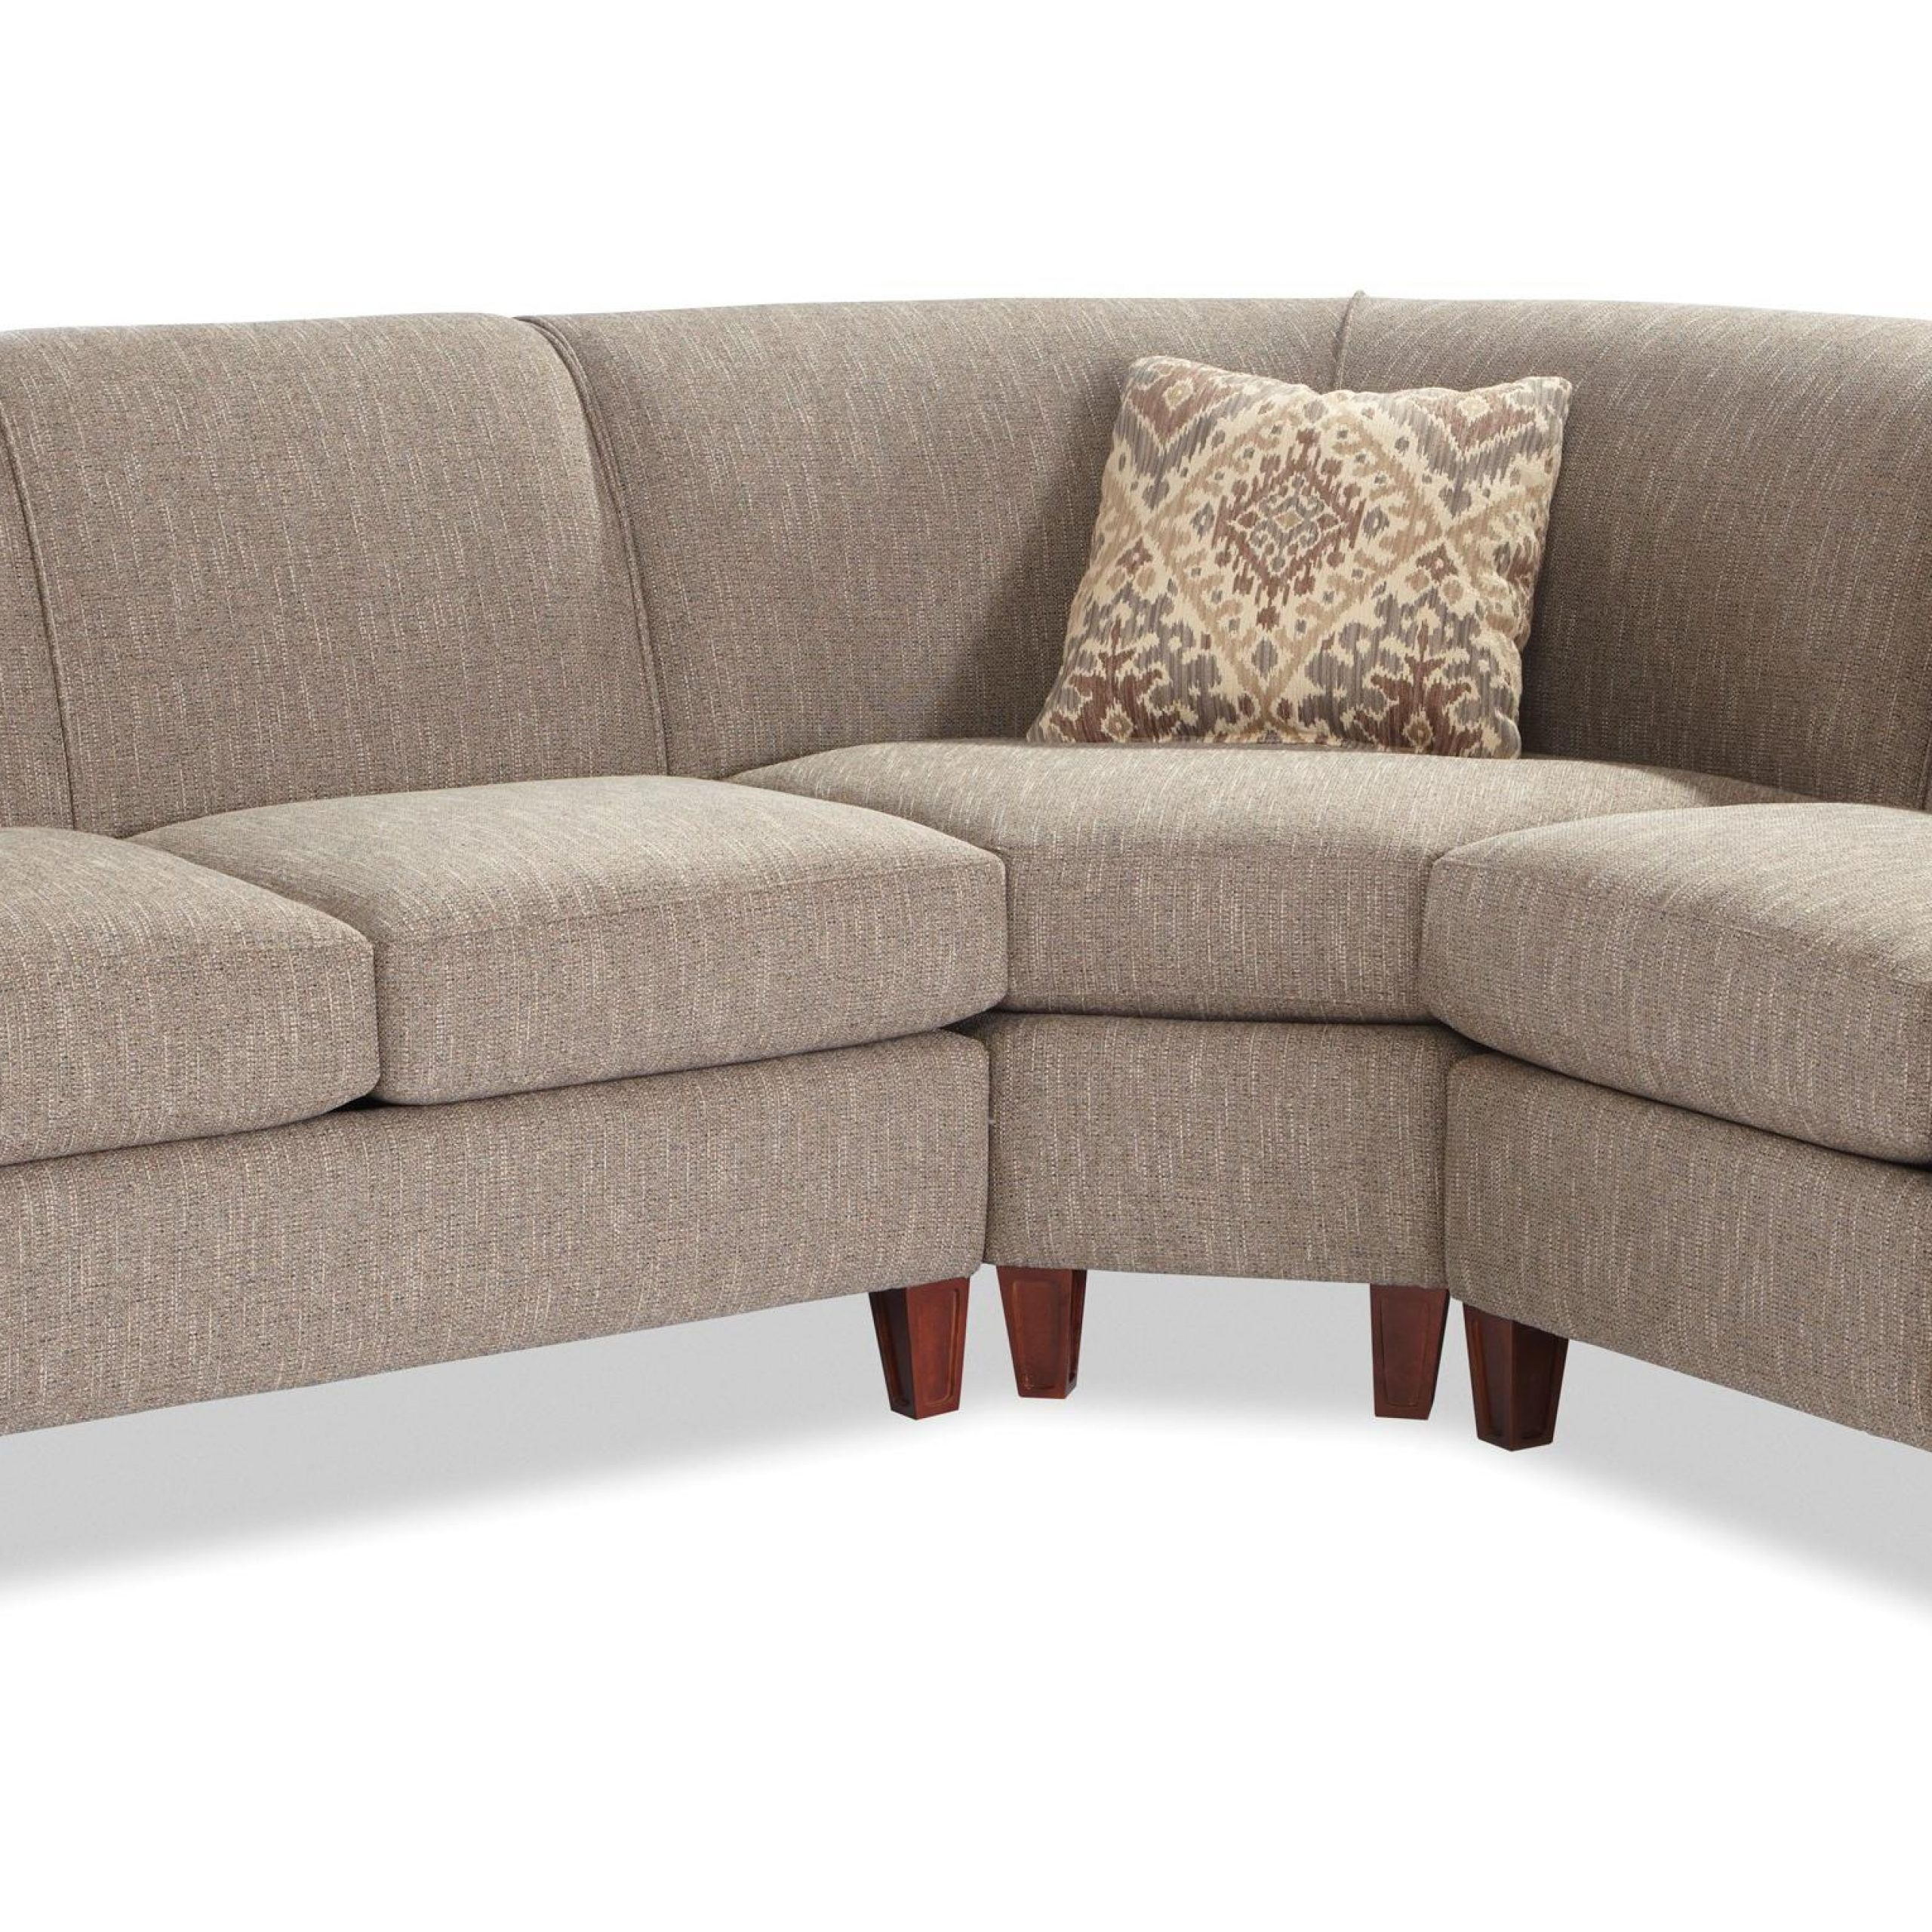 Three Piece Sectional Sofa With Laf Loveseat Regarding Turdur 2 Piece Sectionals With Laf Loveseat (View 8 of 15)